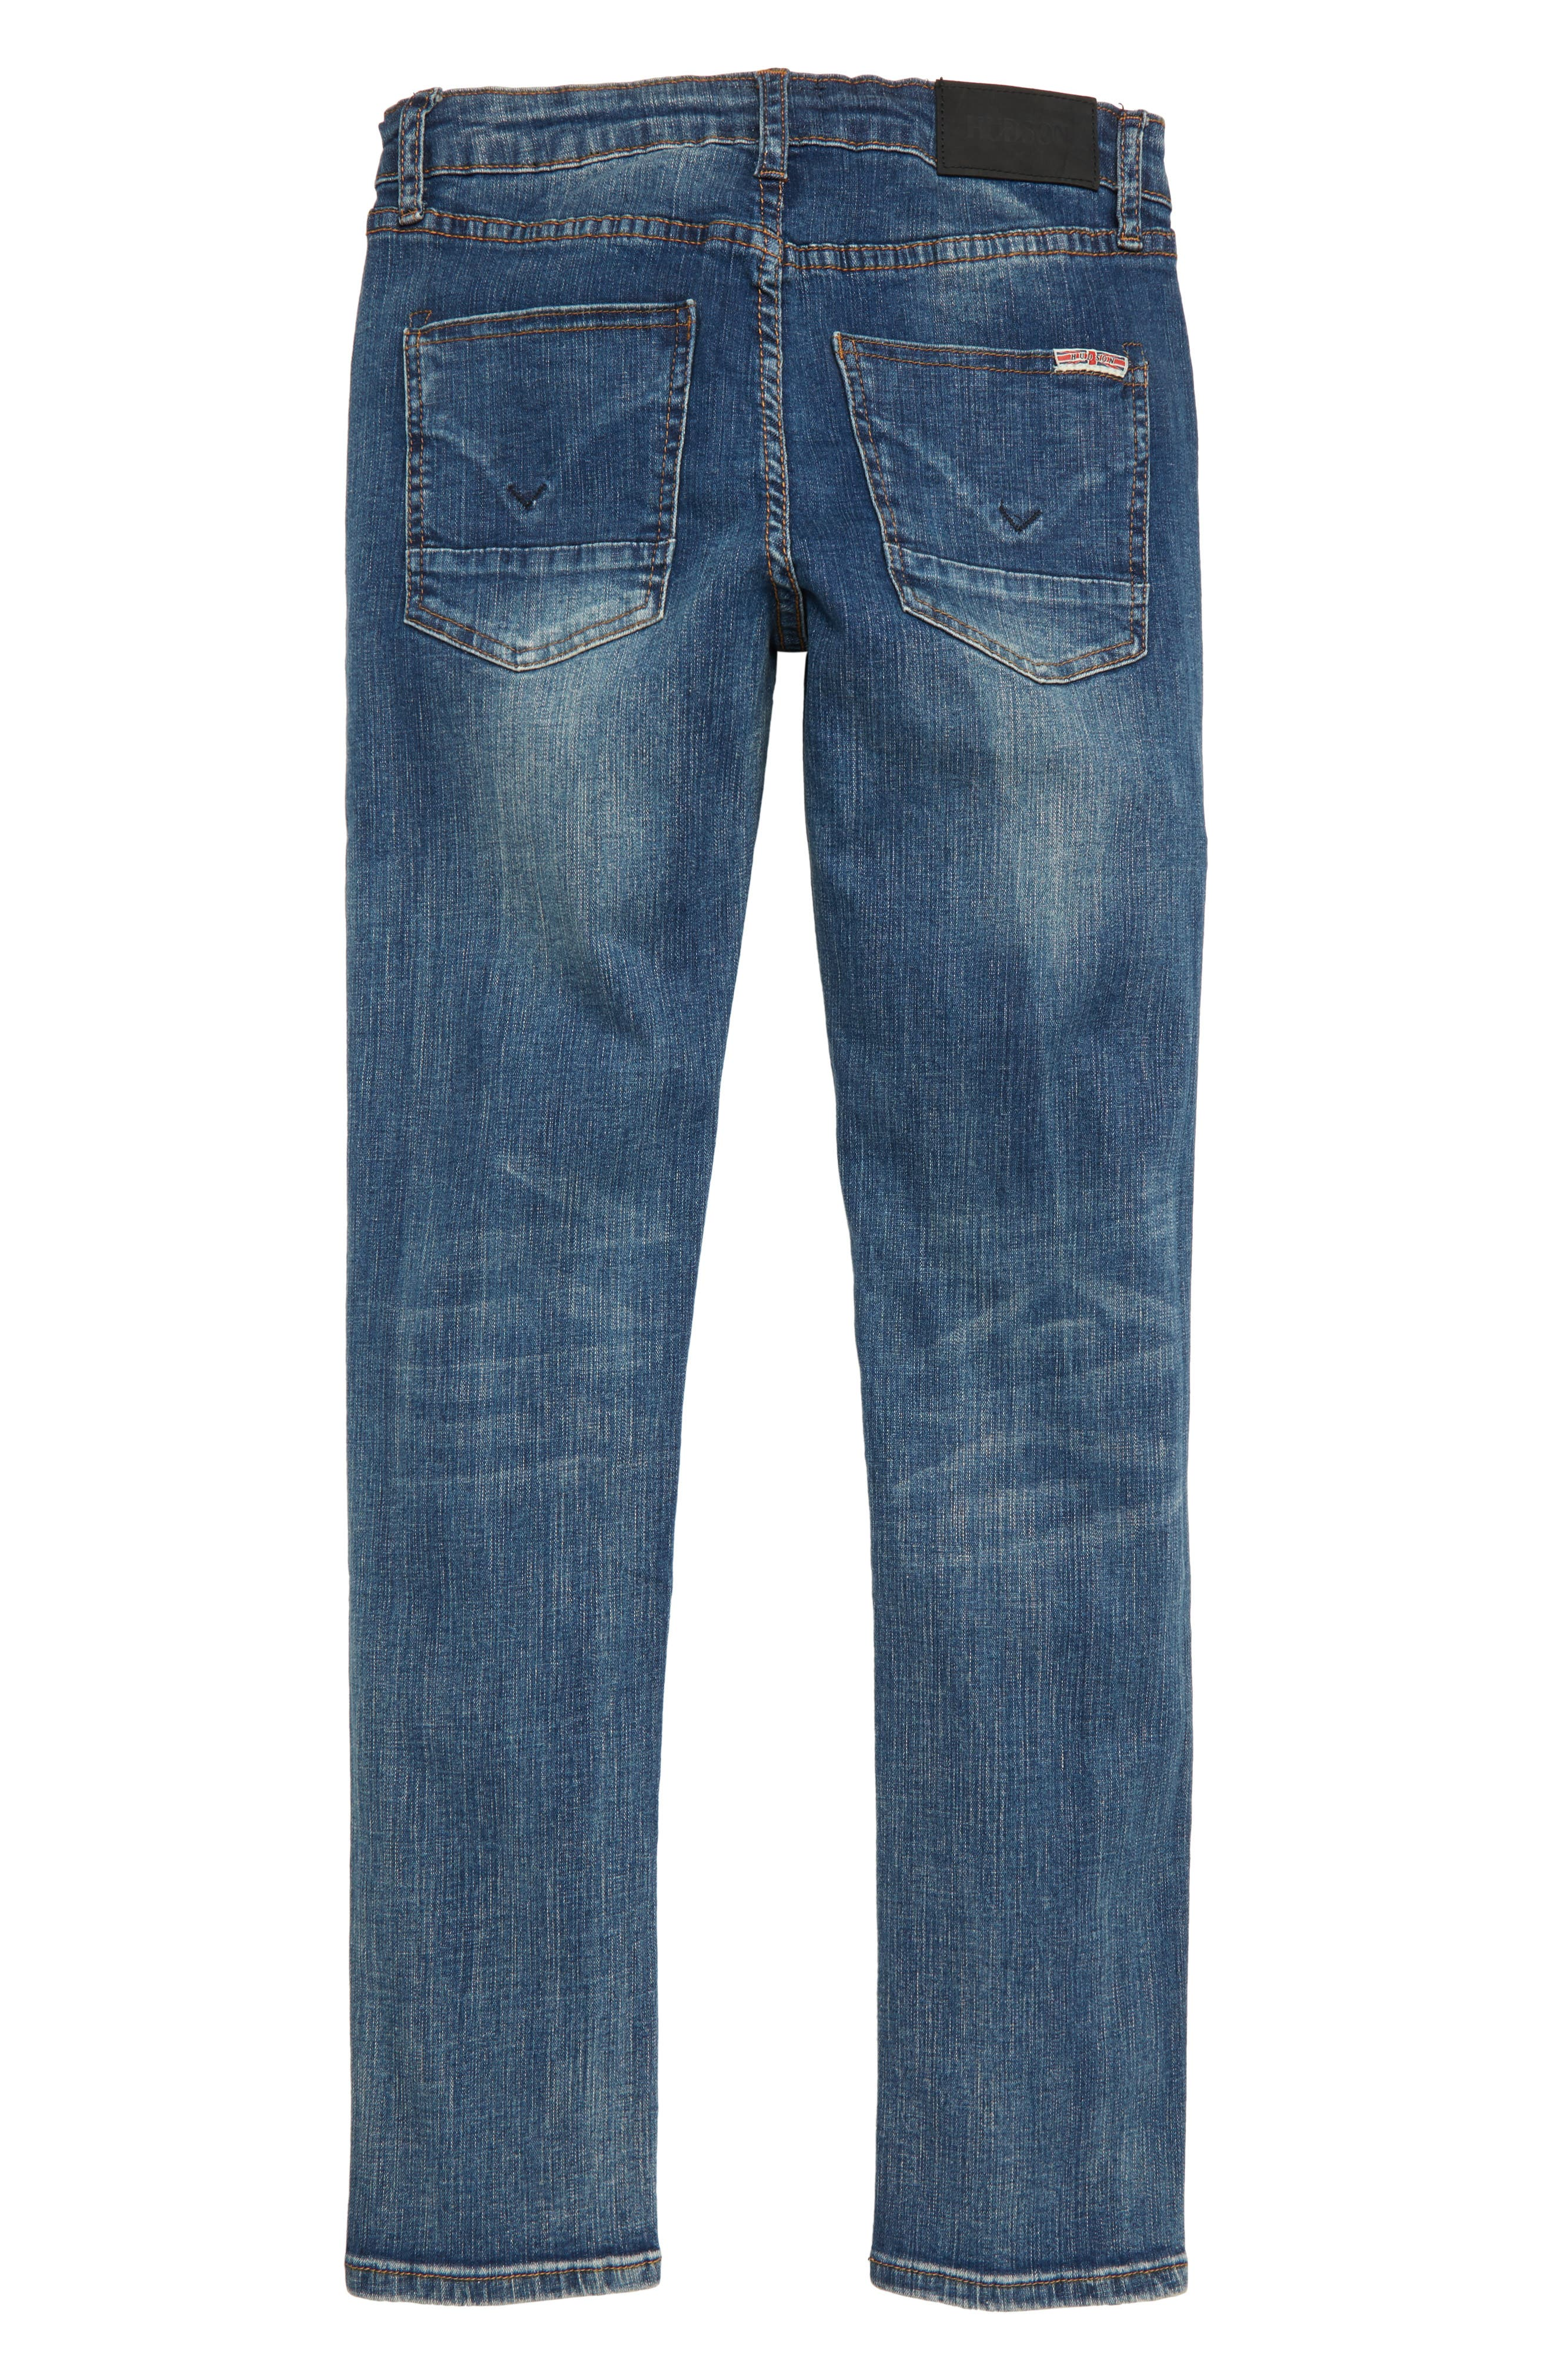 Jude Skinny Jeans,                             Alternate thumbnail 3, color,